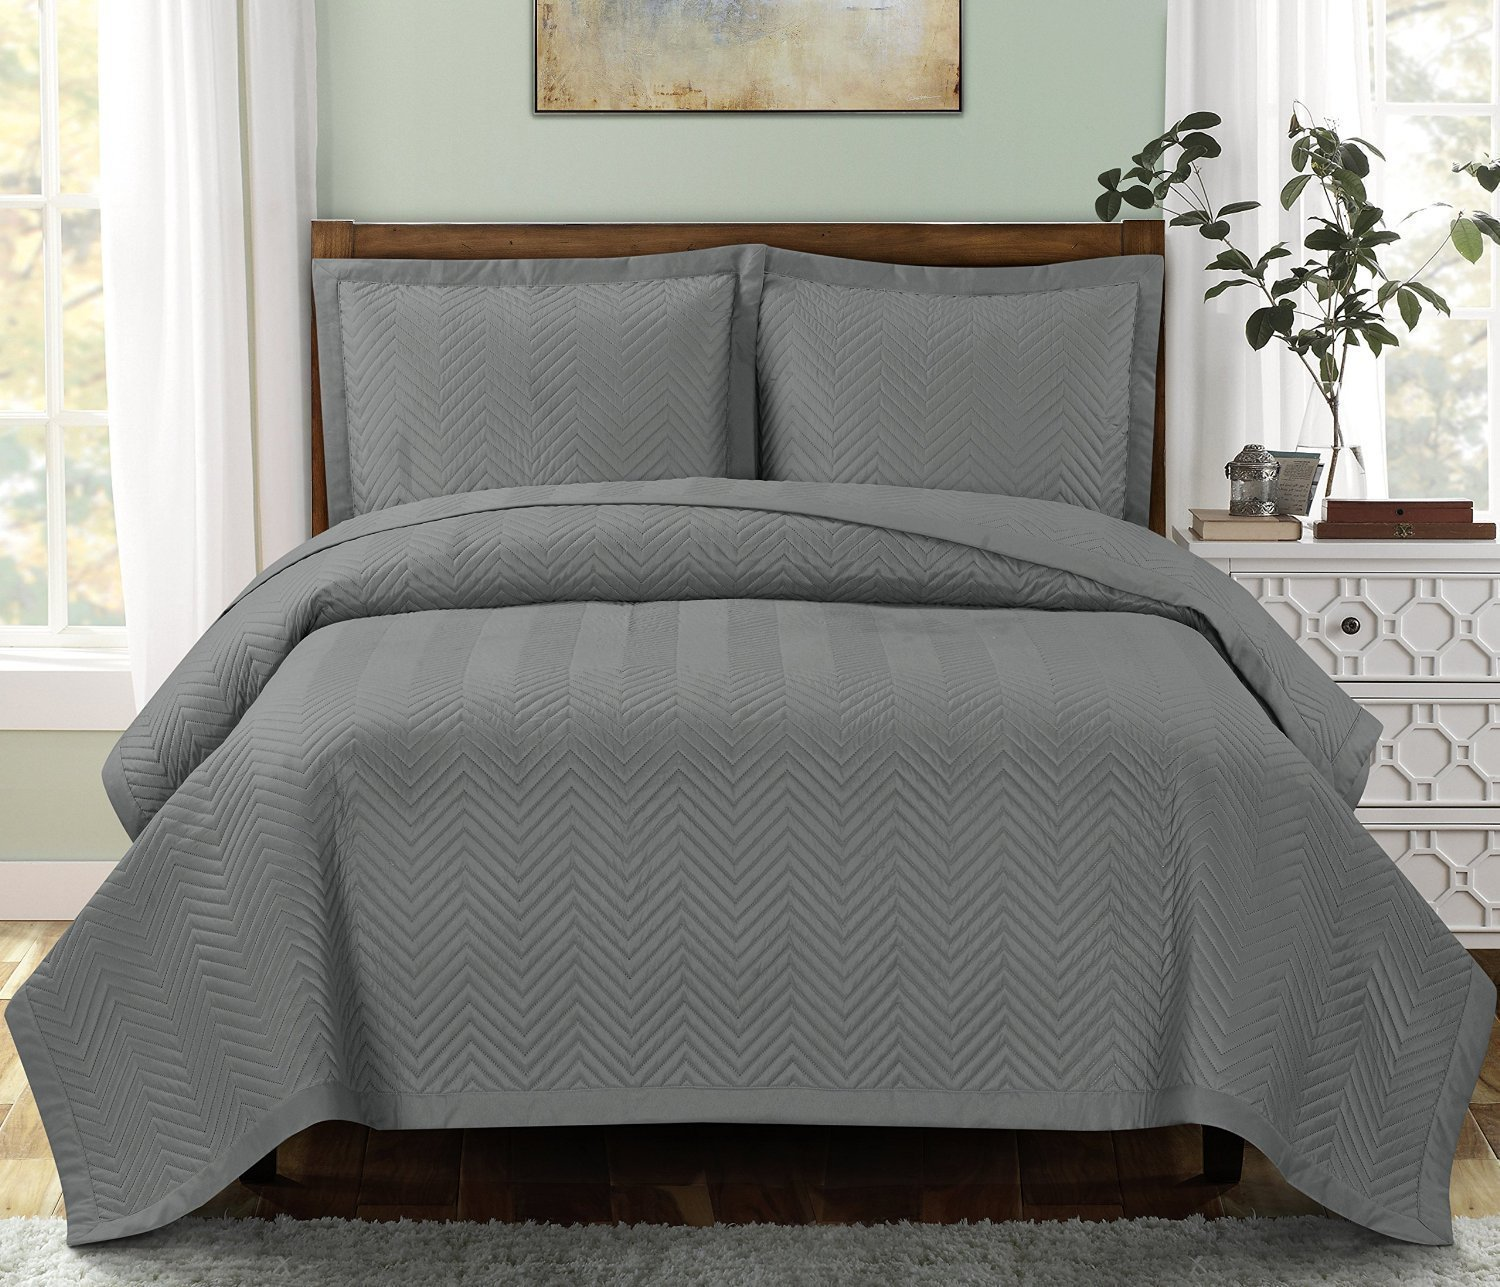 "Chervon-Grey-California King Size, Over-Sized Quilt 3pc set, Luxury Microfiber Coverlet 110""x96"" 2- Pillow Shams 20x36"""